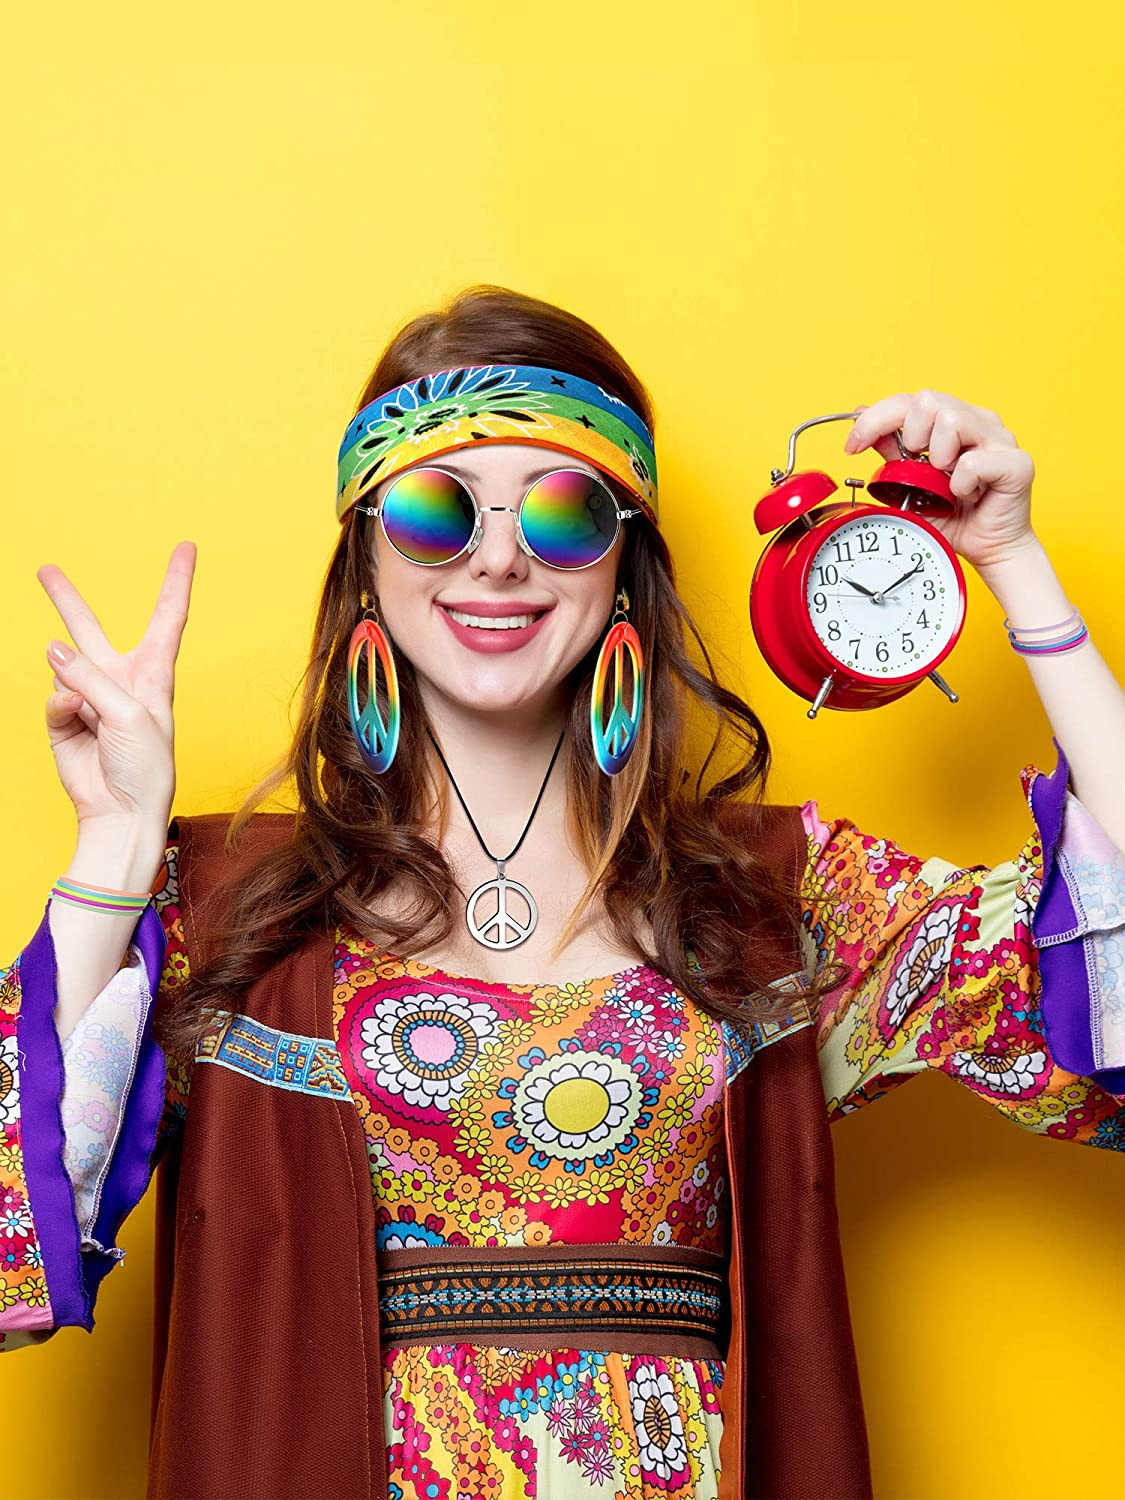 4 Pieces 70s Hippie Accessory Set Hippie Style Peace Sign Earrings Necklace Hippie Glasses Headband for Women Girls